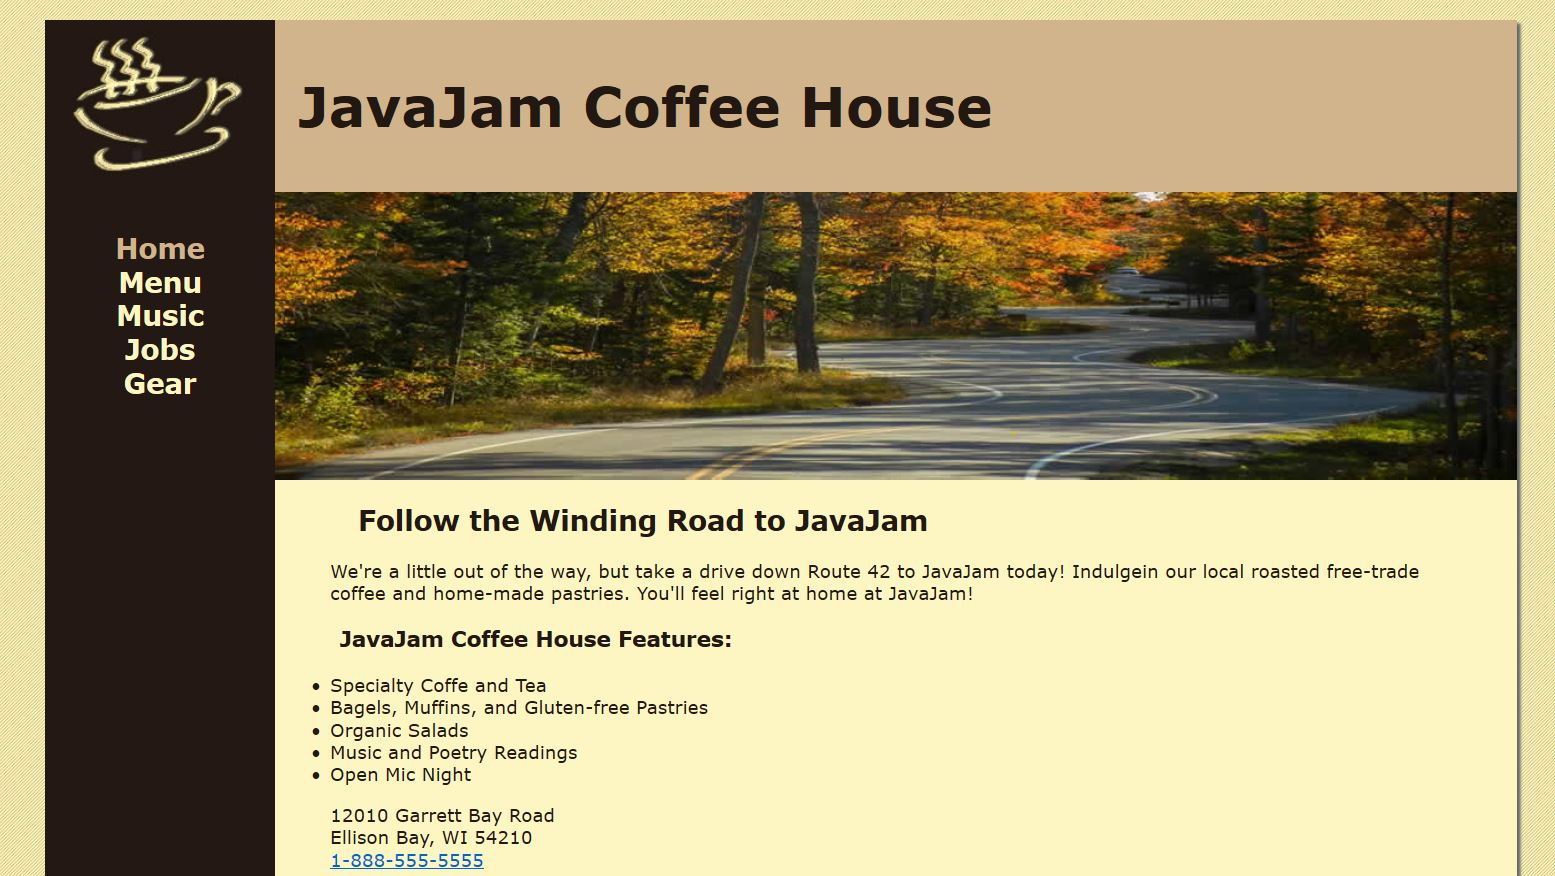 Javajam Coffee House